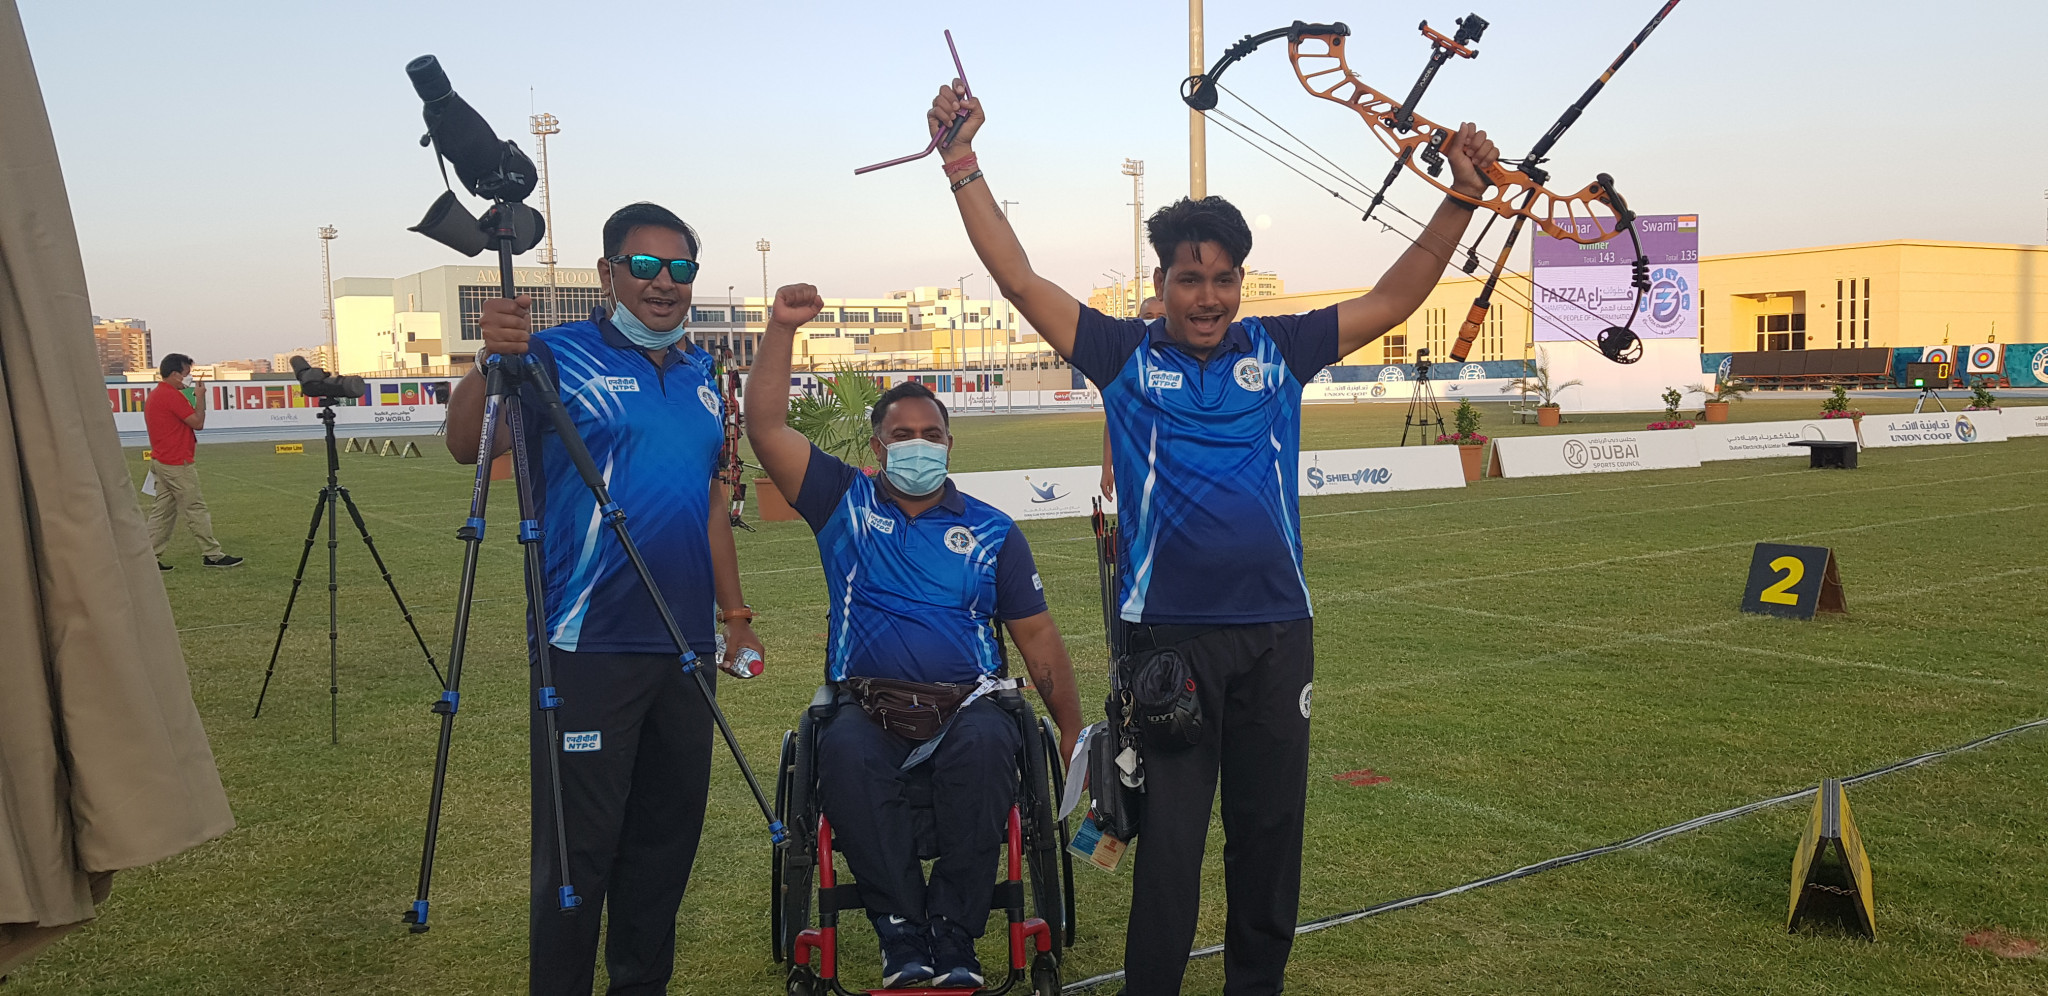 Russia claim two golds on final day to top medal table at Fazza Para Archery World Ranking Tournament